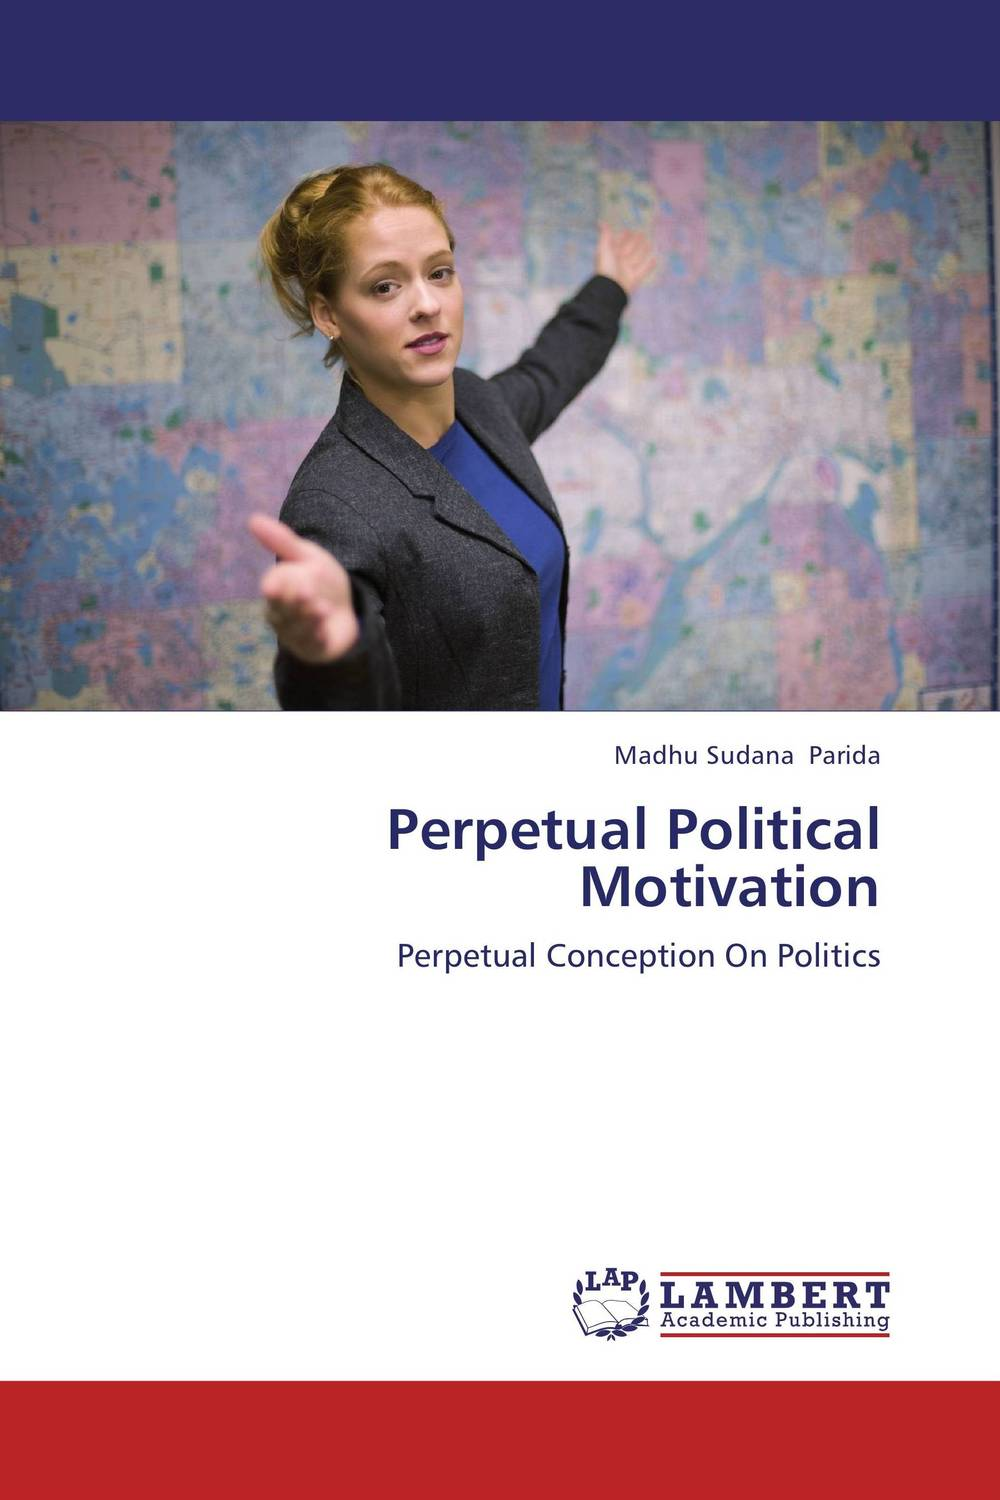 Perpetual Political Motivation a conscientious thought on worldwide latest governance system